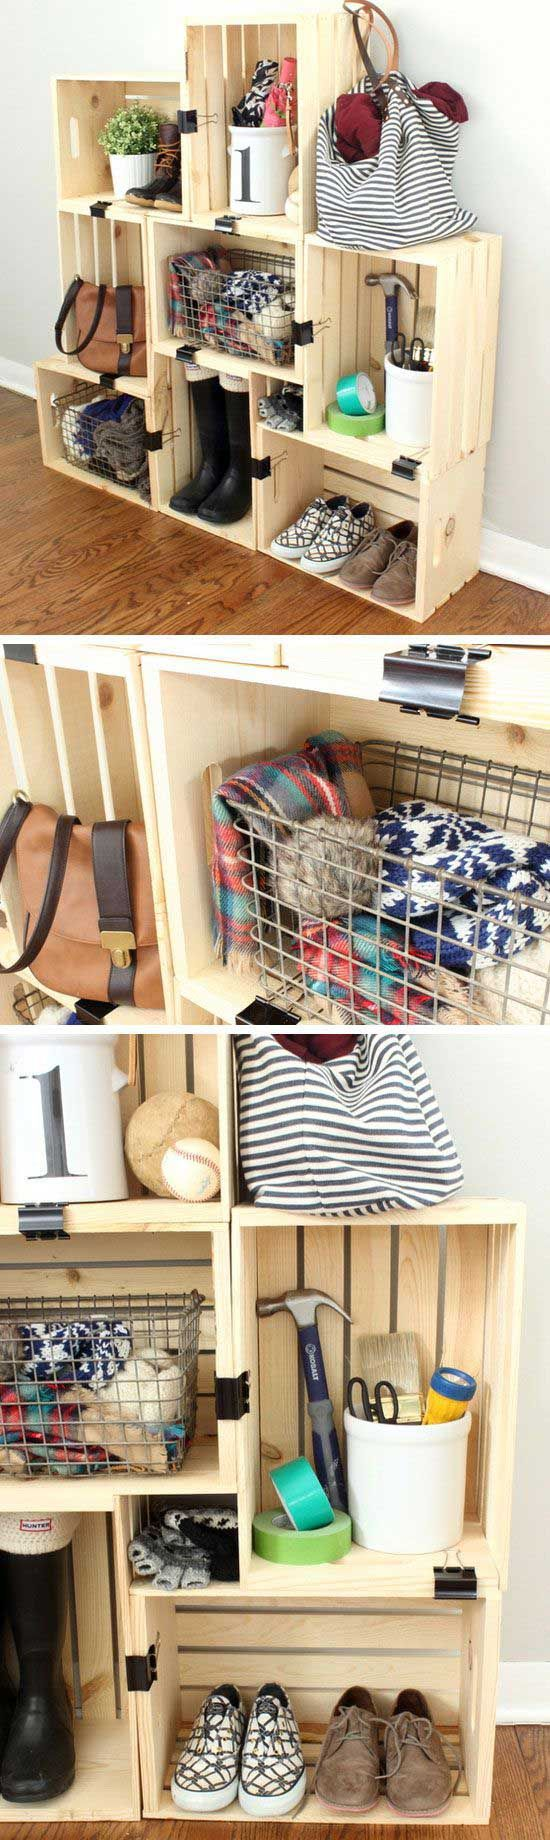 7 Easy Home Storage Hacks A place for everything and everything in its place is a great maxim, if you have plenty of space. Closets and drawers fill quickly, though.